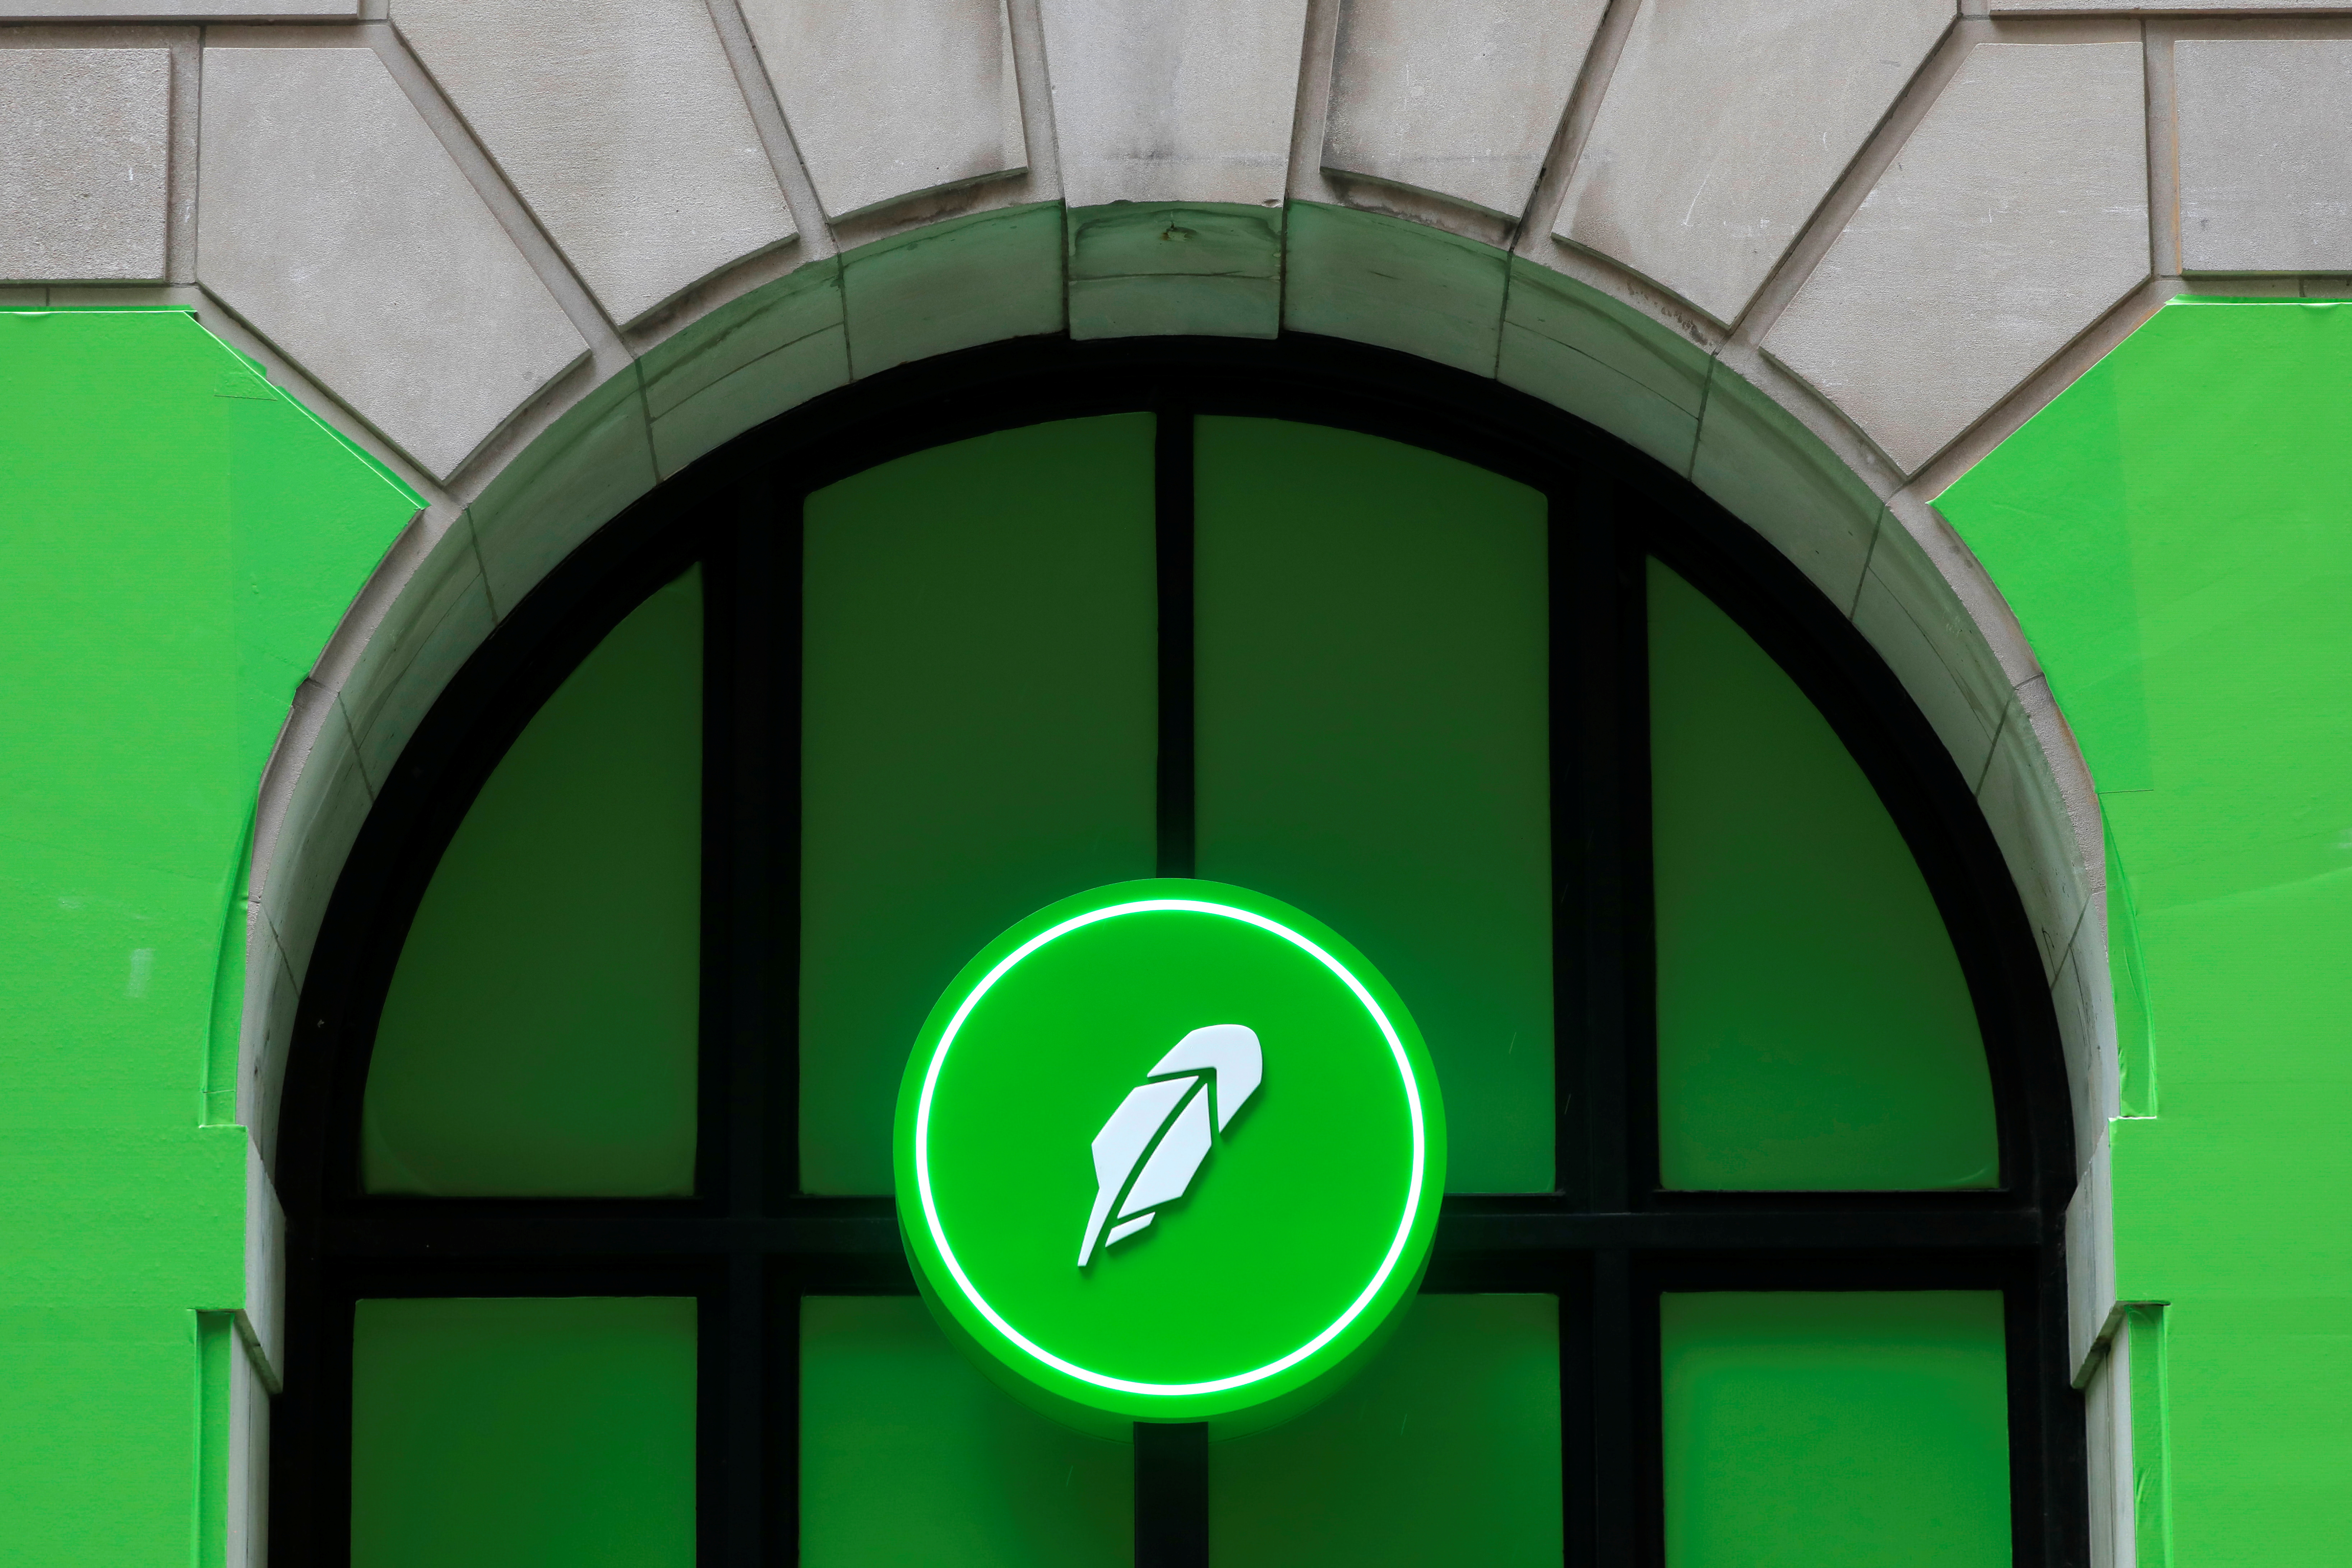 The logo of Robinhood Markets, Inc. is seen at a pop-up event on Wall Street after the company's IPO in New York City, U.S., July 29, 2021.  REUTERS/Andrew Kelly